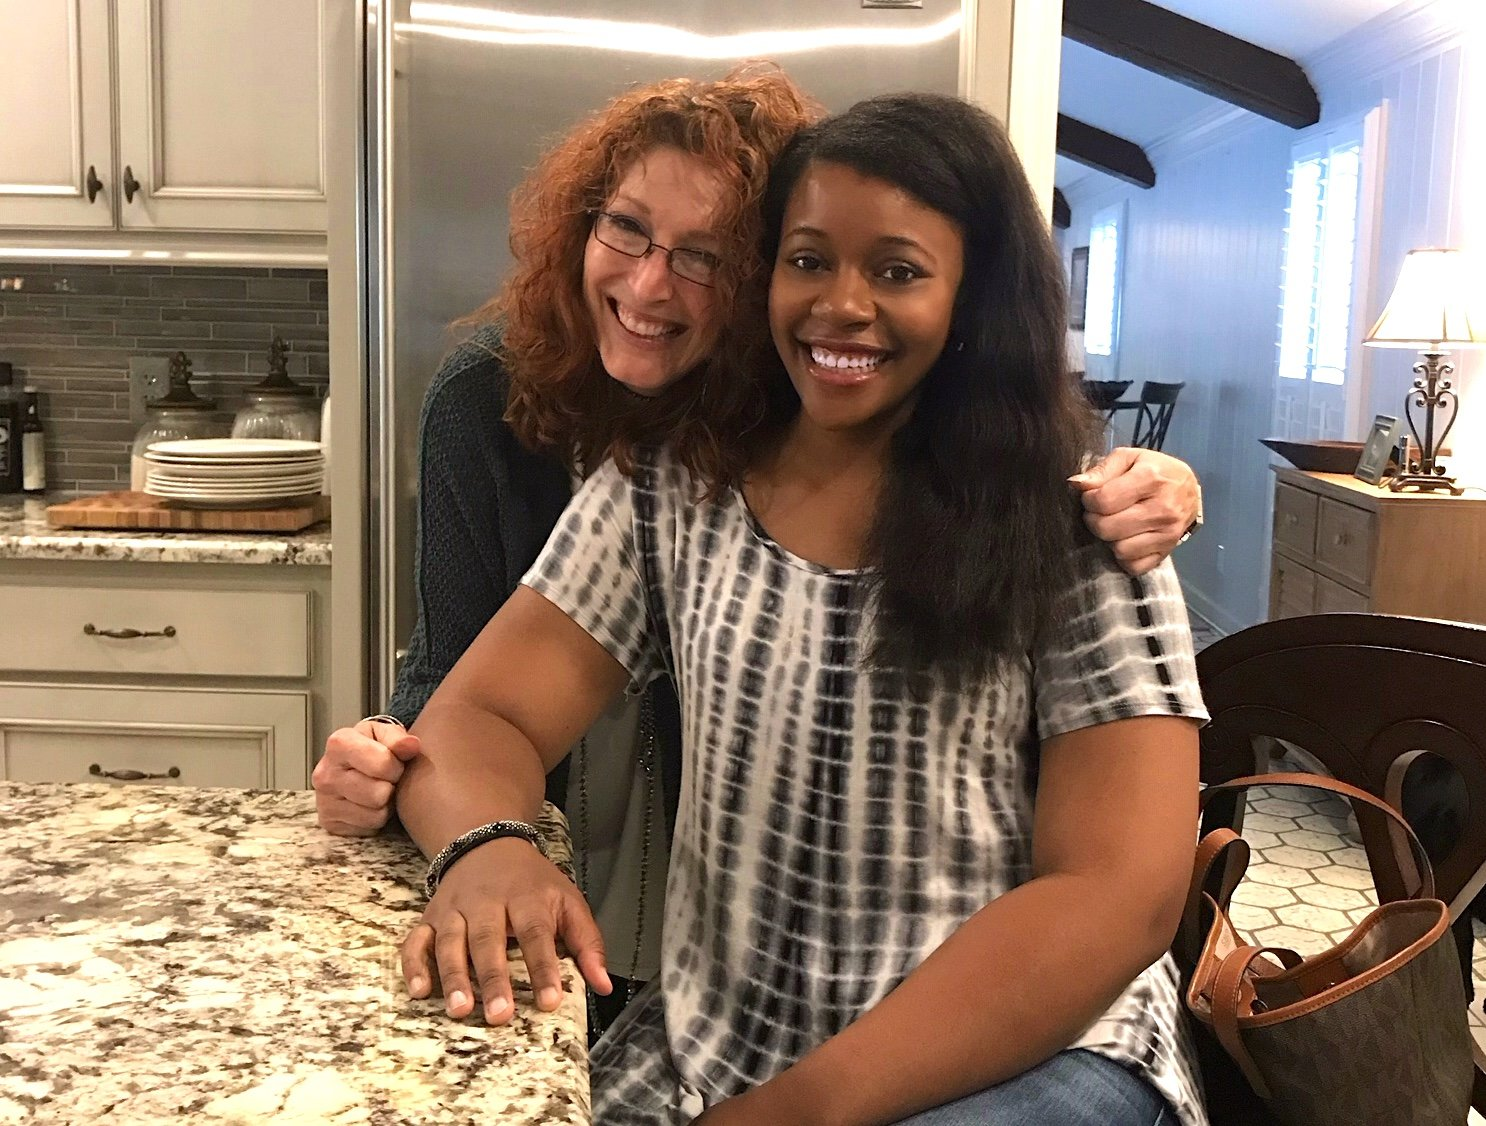 University of Alabama student Rolanda Tina Turner poses with Walker College Foundation Executive Director Holly Trawick. Turner has been interning at the Foundation this summer.